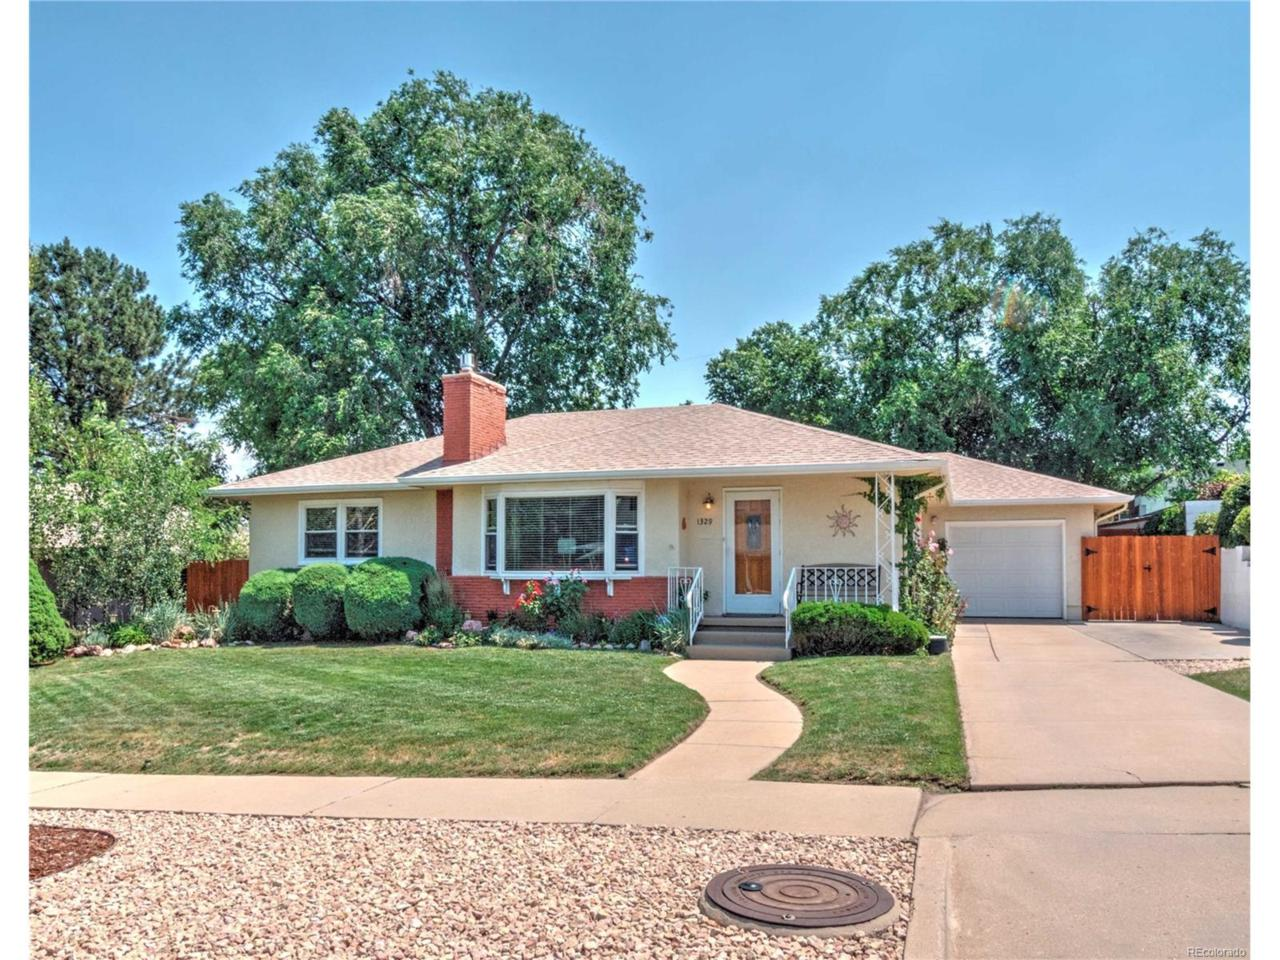 1329 Hillcrest Avenue, Colorado Springs, CO 80909 (MLS #4237305) :: 8z Real Estate